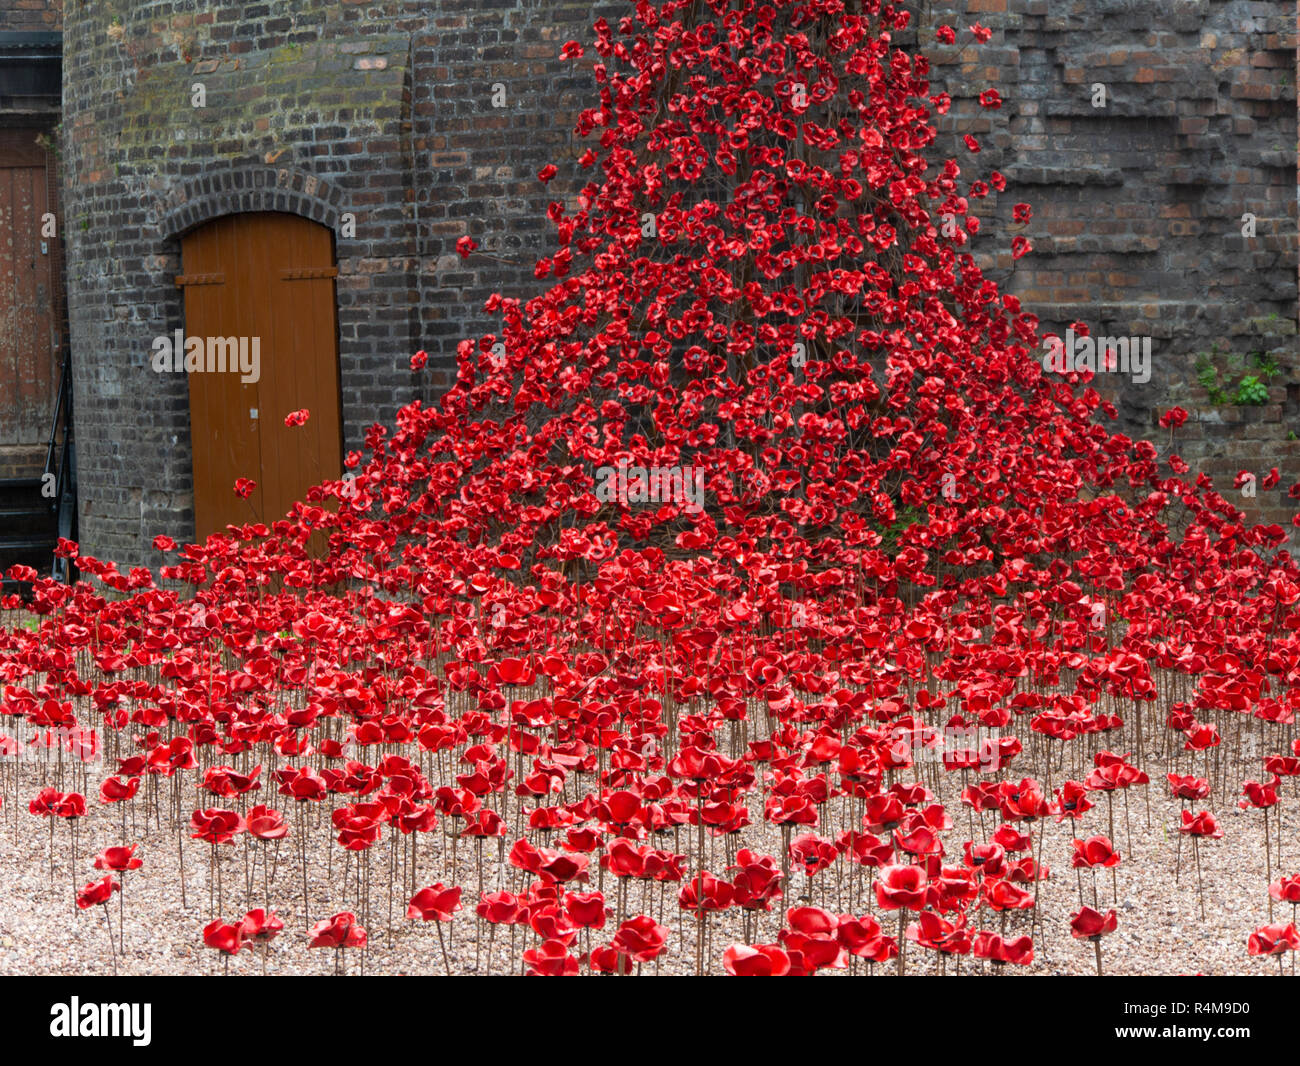 Weeping window, Middleport pottery, Stoke-on-Trent 2018, art installation commemorating 100th anniversary of the end of WW1 - Stock Image